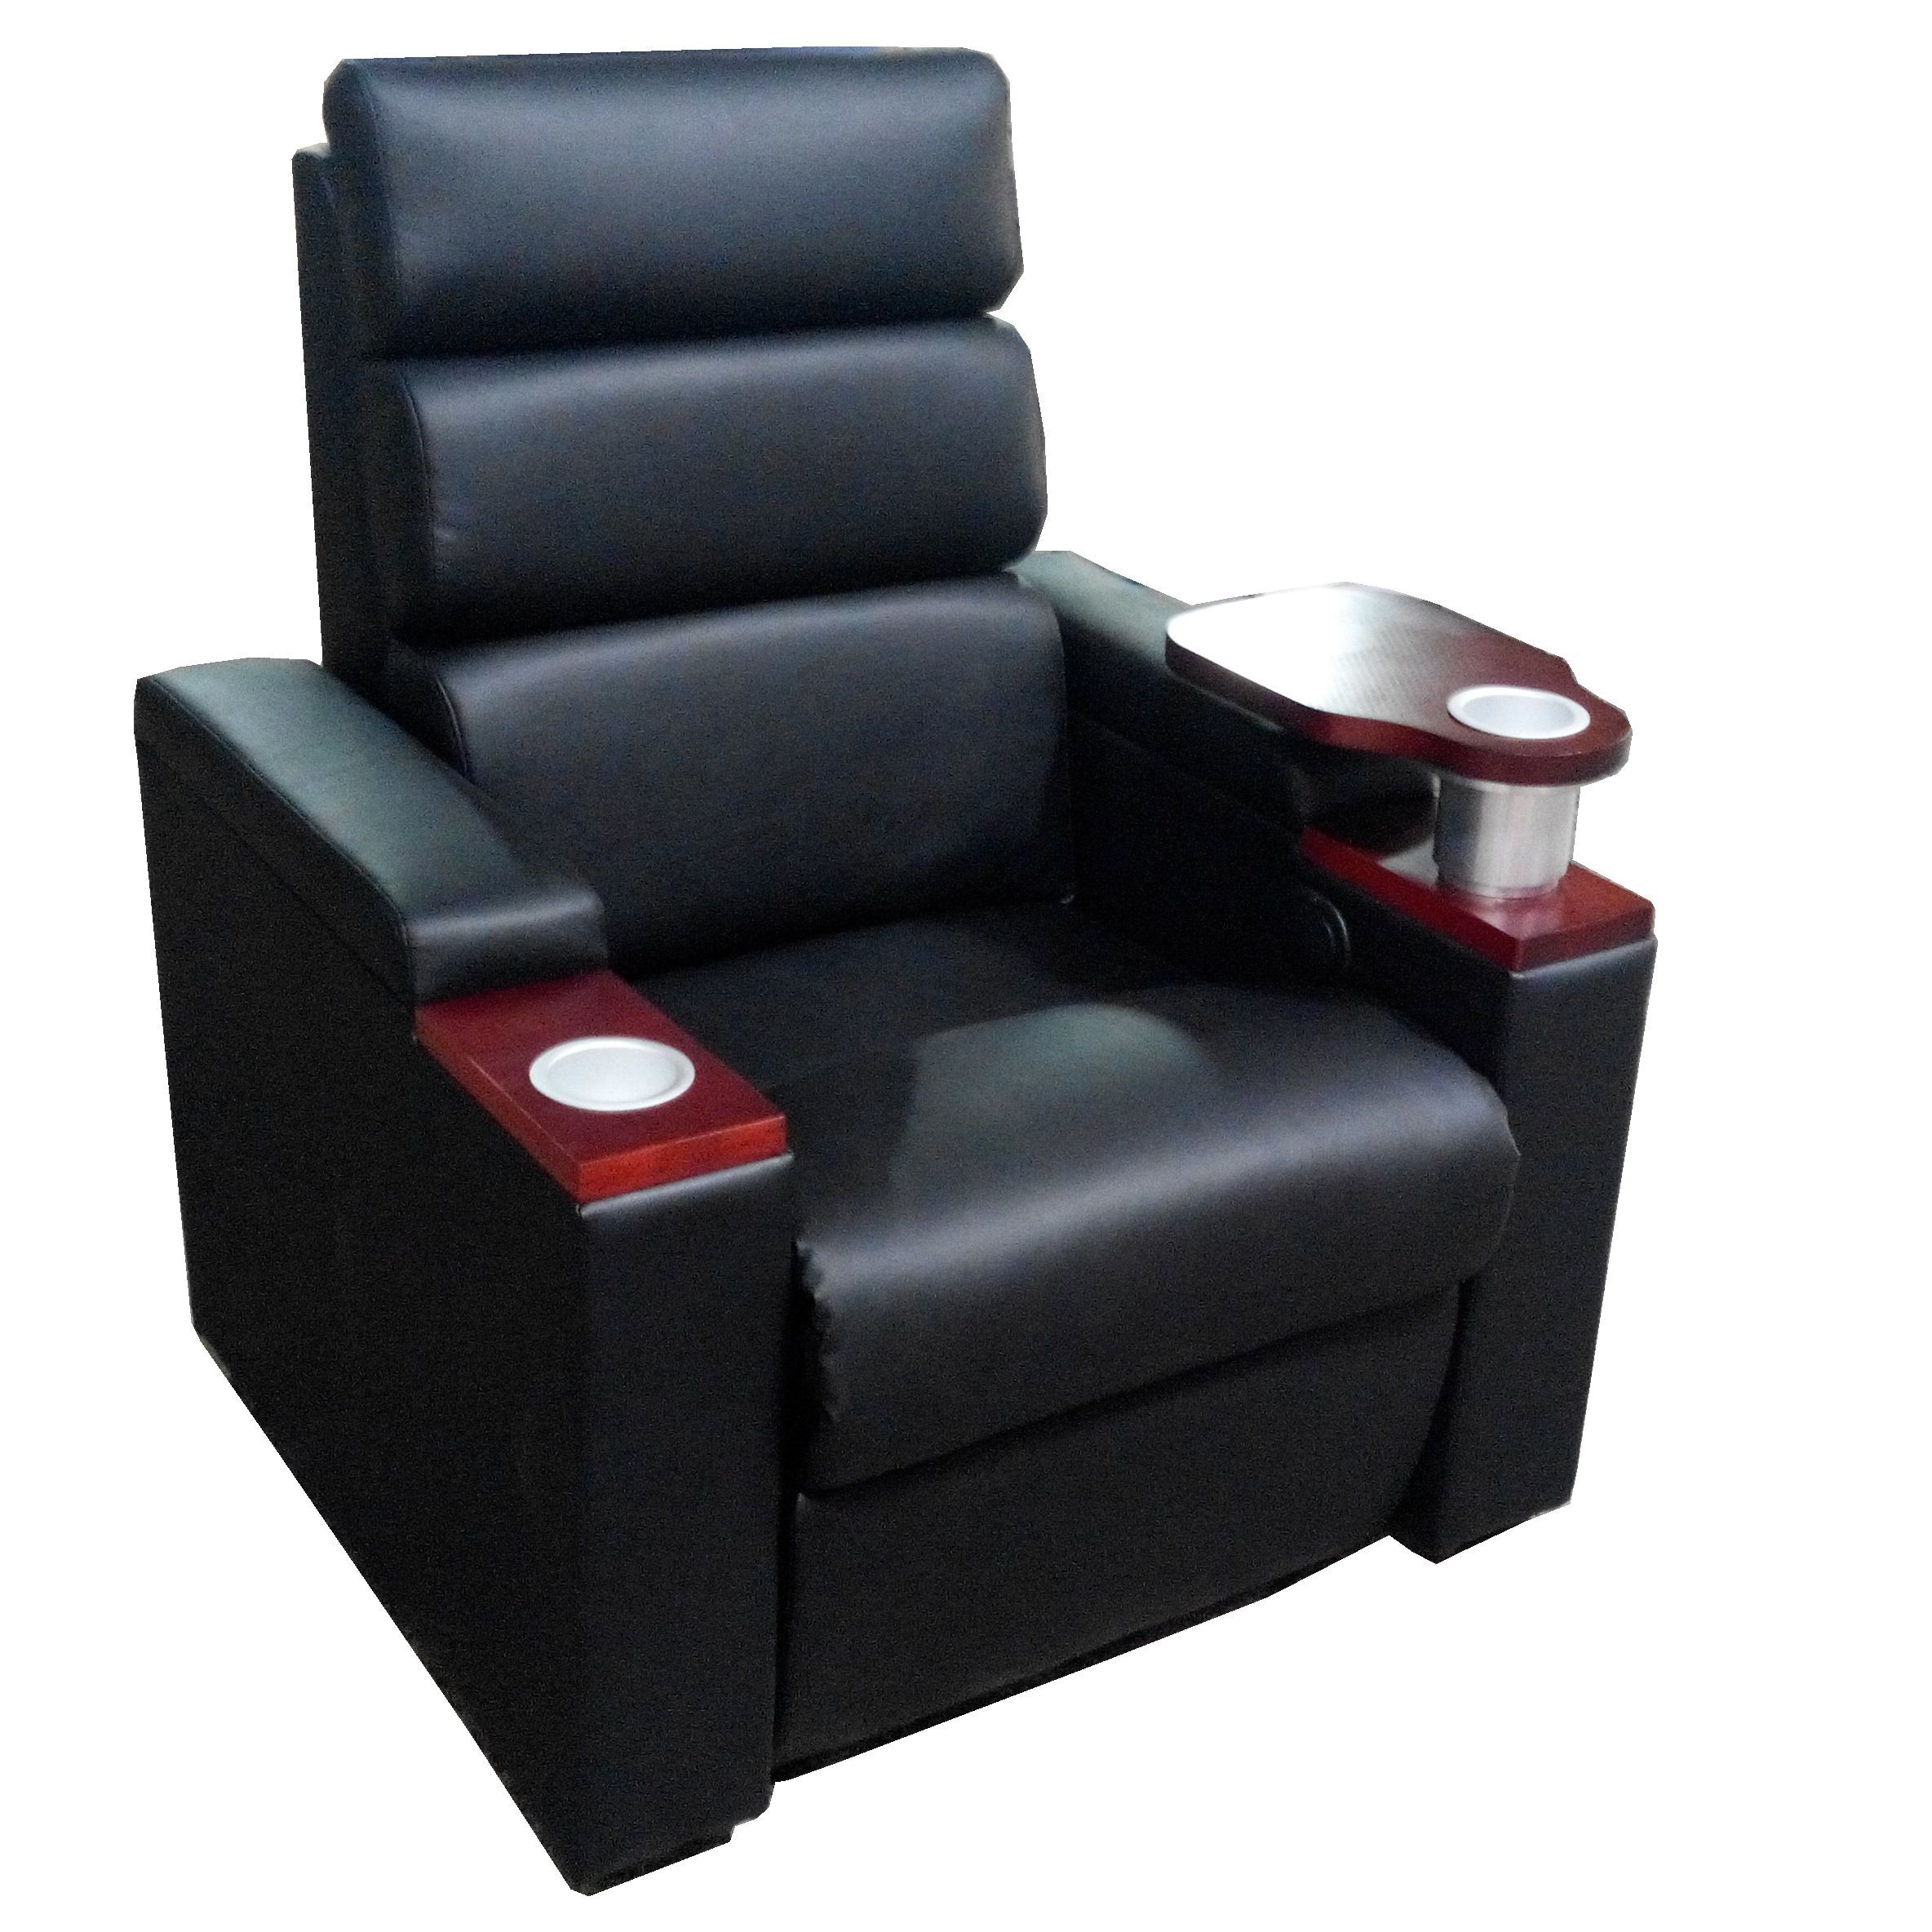 Outstanding Hot Item Cinema Seat Real Leather Electric Reclining Theatre Sofa Cinema Chair Vip 3 Machost Co Dining Chair Design Ideas Machostcouk